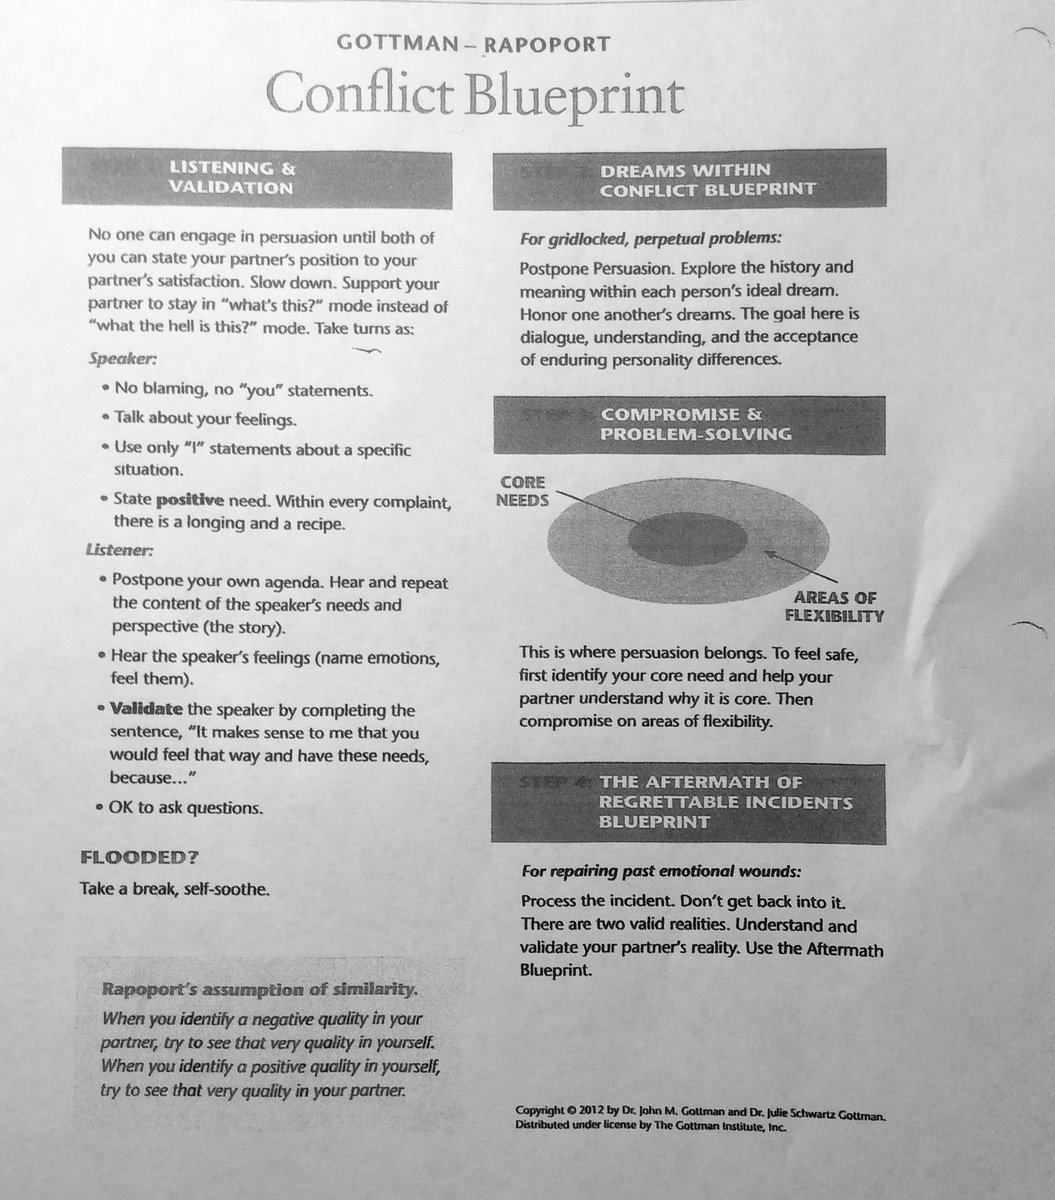 Maile giles lmft on twitter the conflict blueprint has been one maile giles lmft on twitter the conflict blueprint has been one of the most helpful tools working with couples thank you gottman marriage malvernweather Images